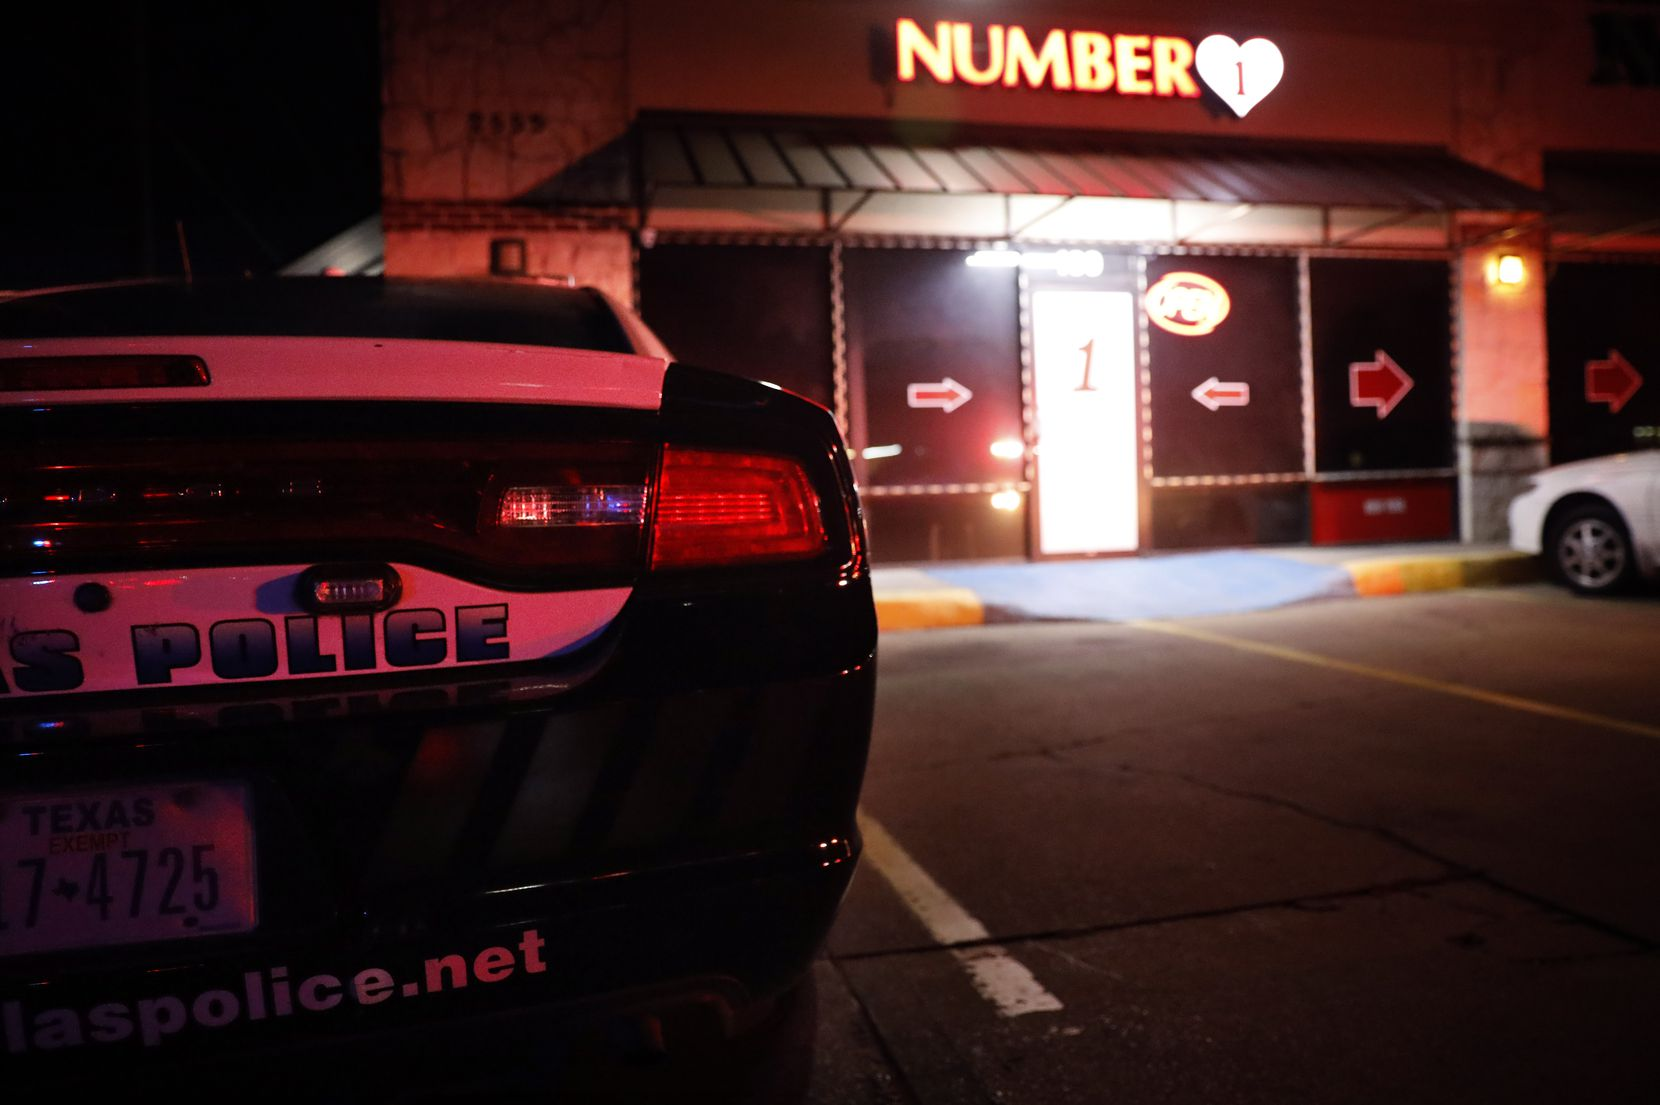 The Dallas Police vice unit raided a massage parlor named Number 1 on Walnut Hill Lane in northwest Dallas Tuesday night. It has been there for three years.